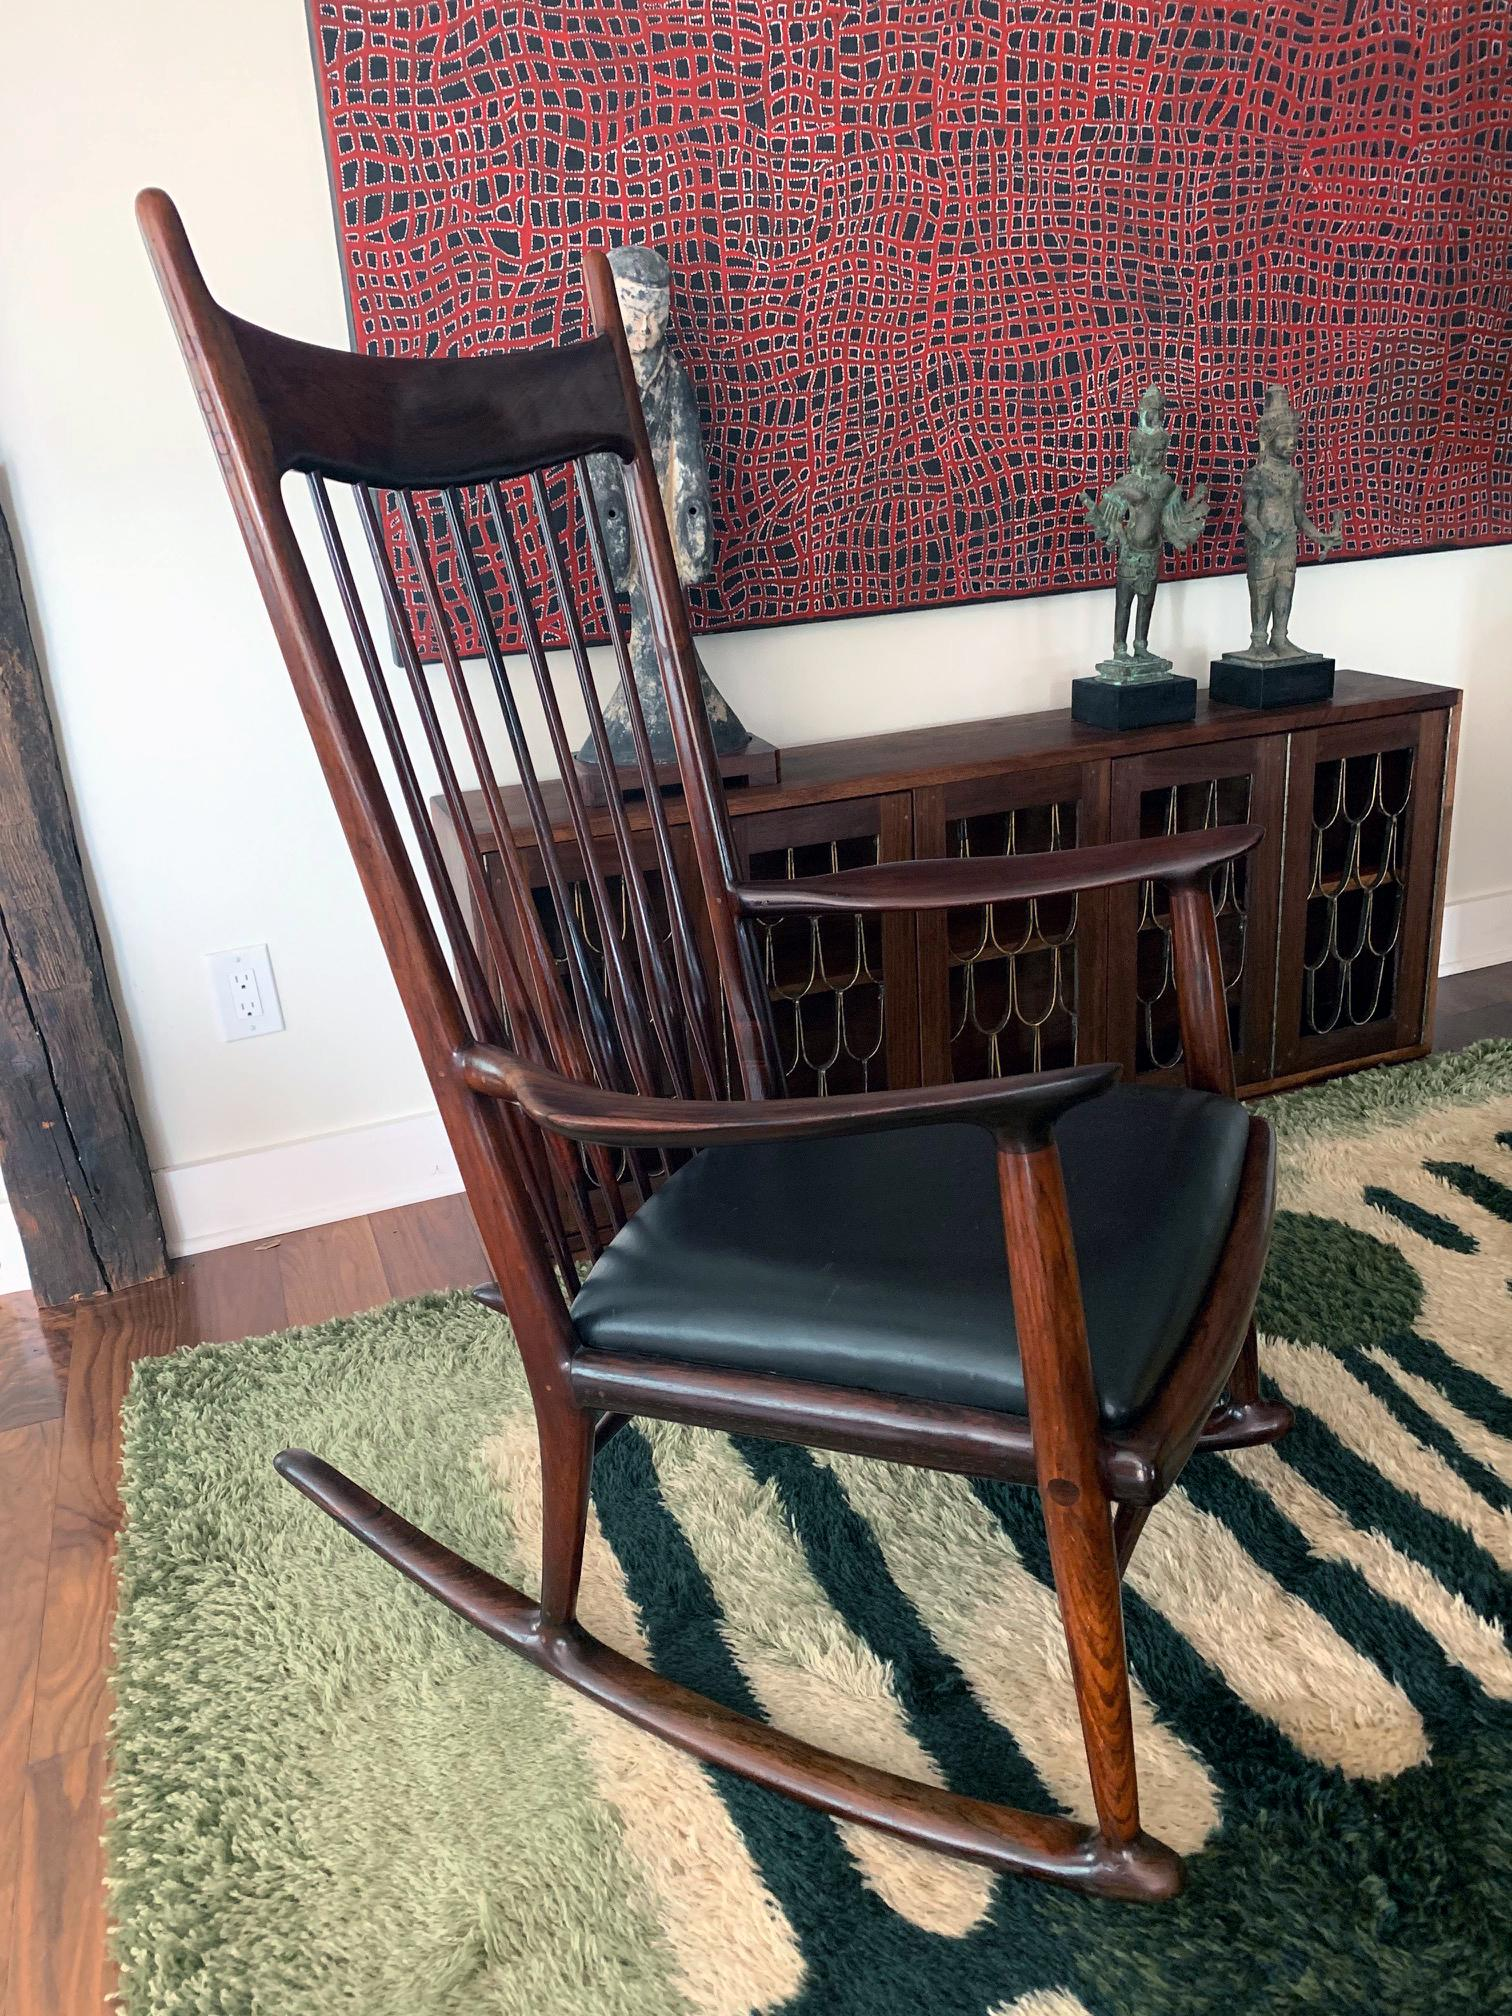 Strange Rare Early Rosewood Rocking Chair By Sam Maloof Spiritservingveterans Wood Chair Design Ideas Spiritservingveteransorg